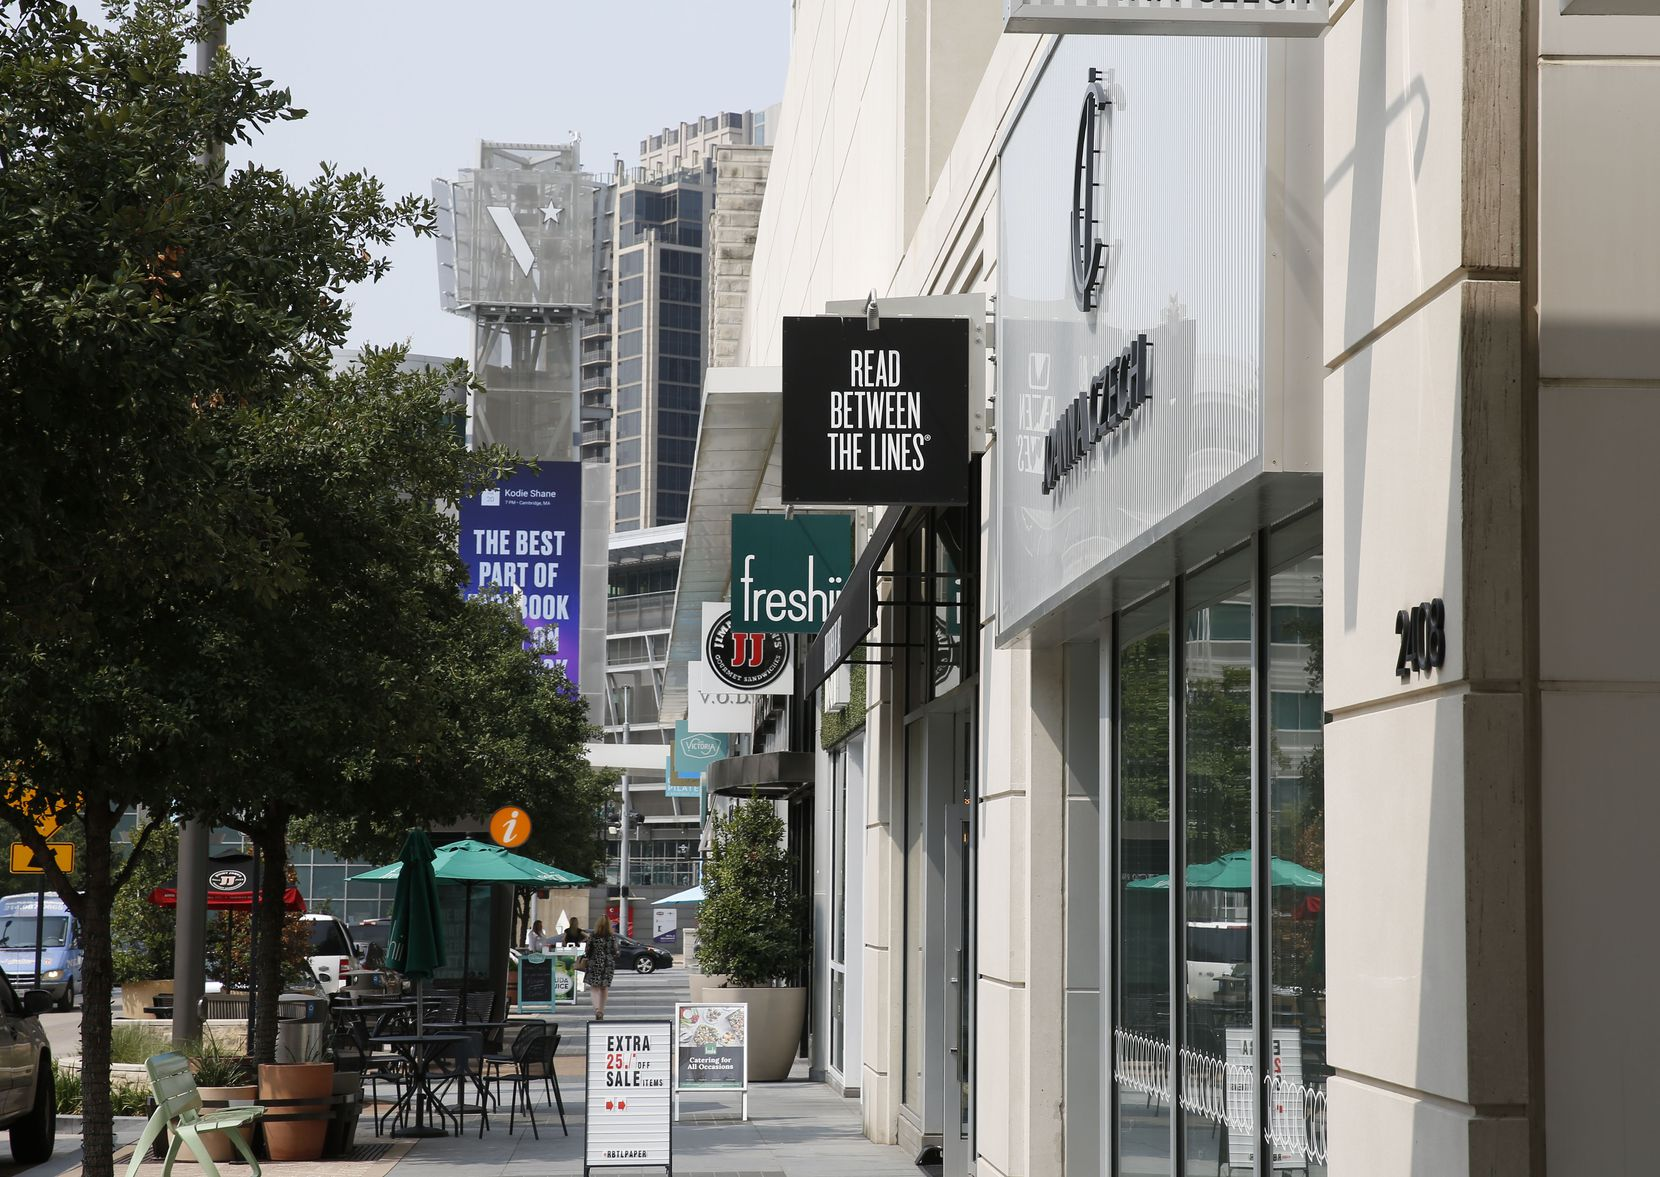 Victory Park's shops and restaurant space is now more than 80 percent leased with more new eateries and merchants coming before the end of the year.